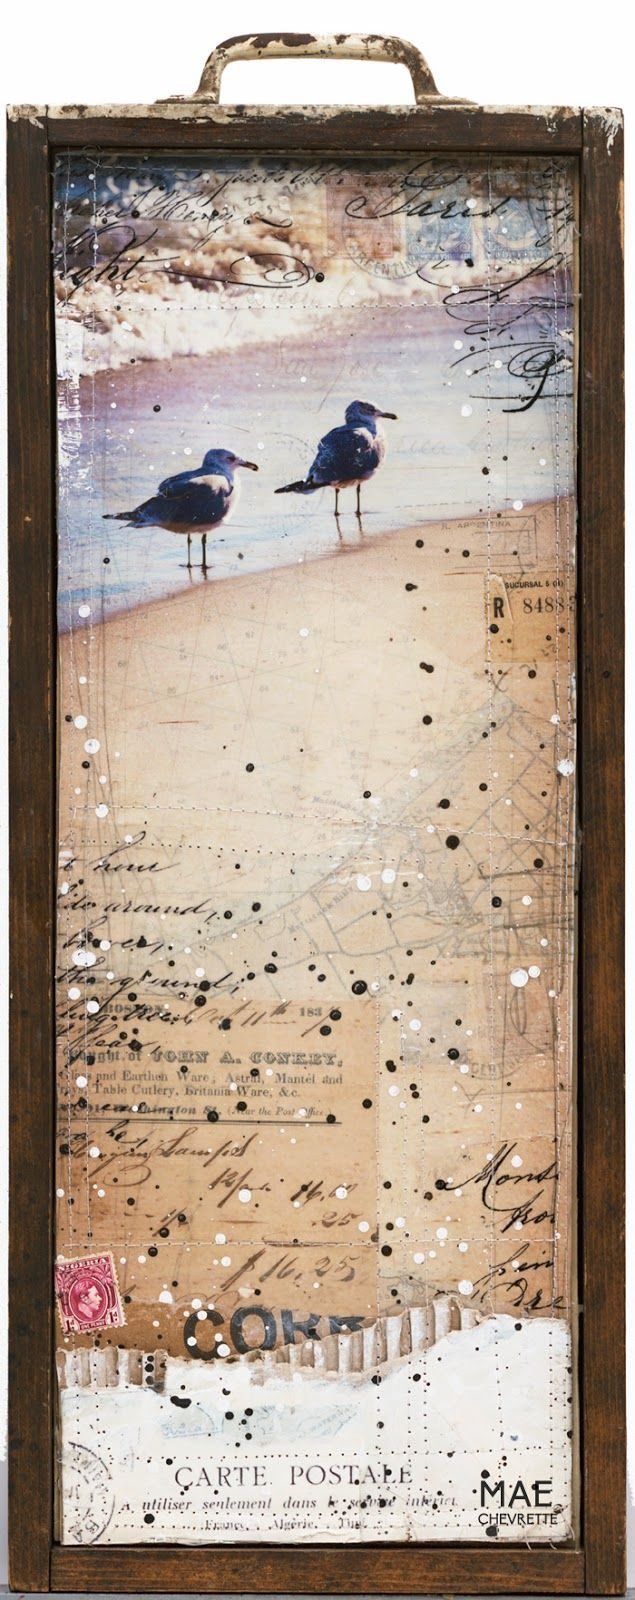 to go into the world : the artwork of mae chevrette: winter birds and shells i found